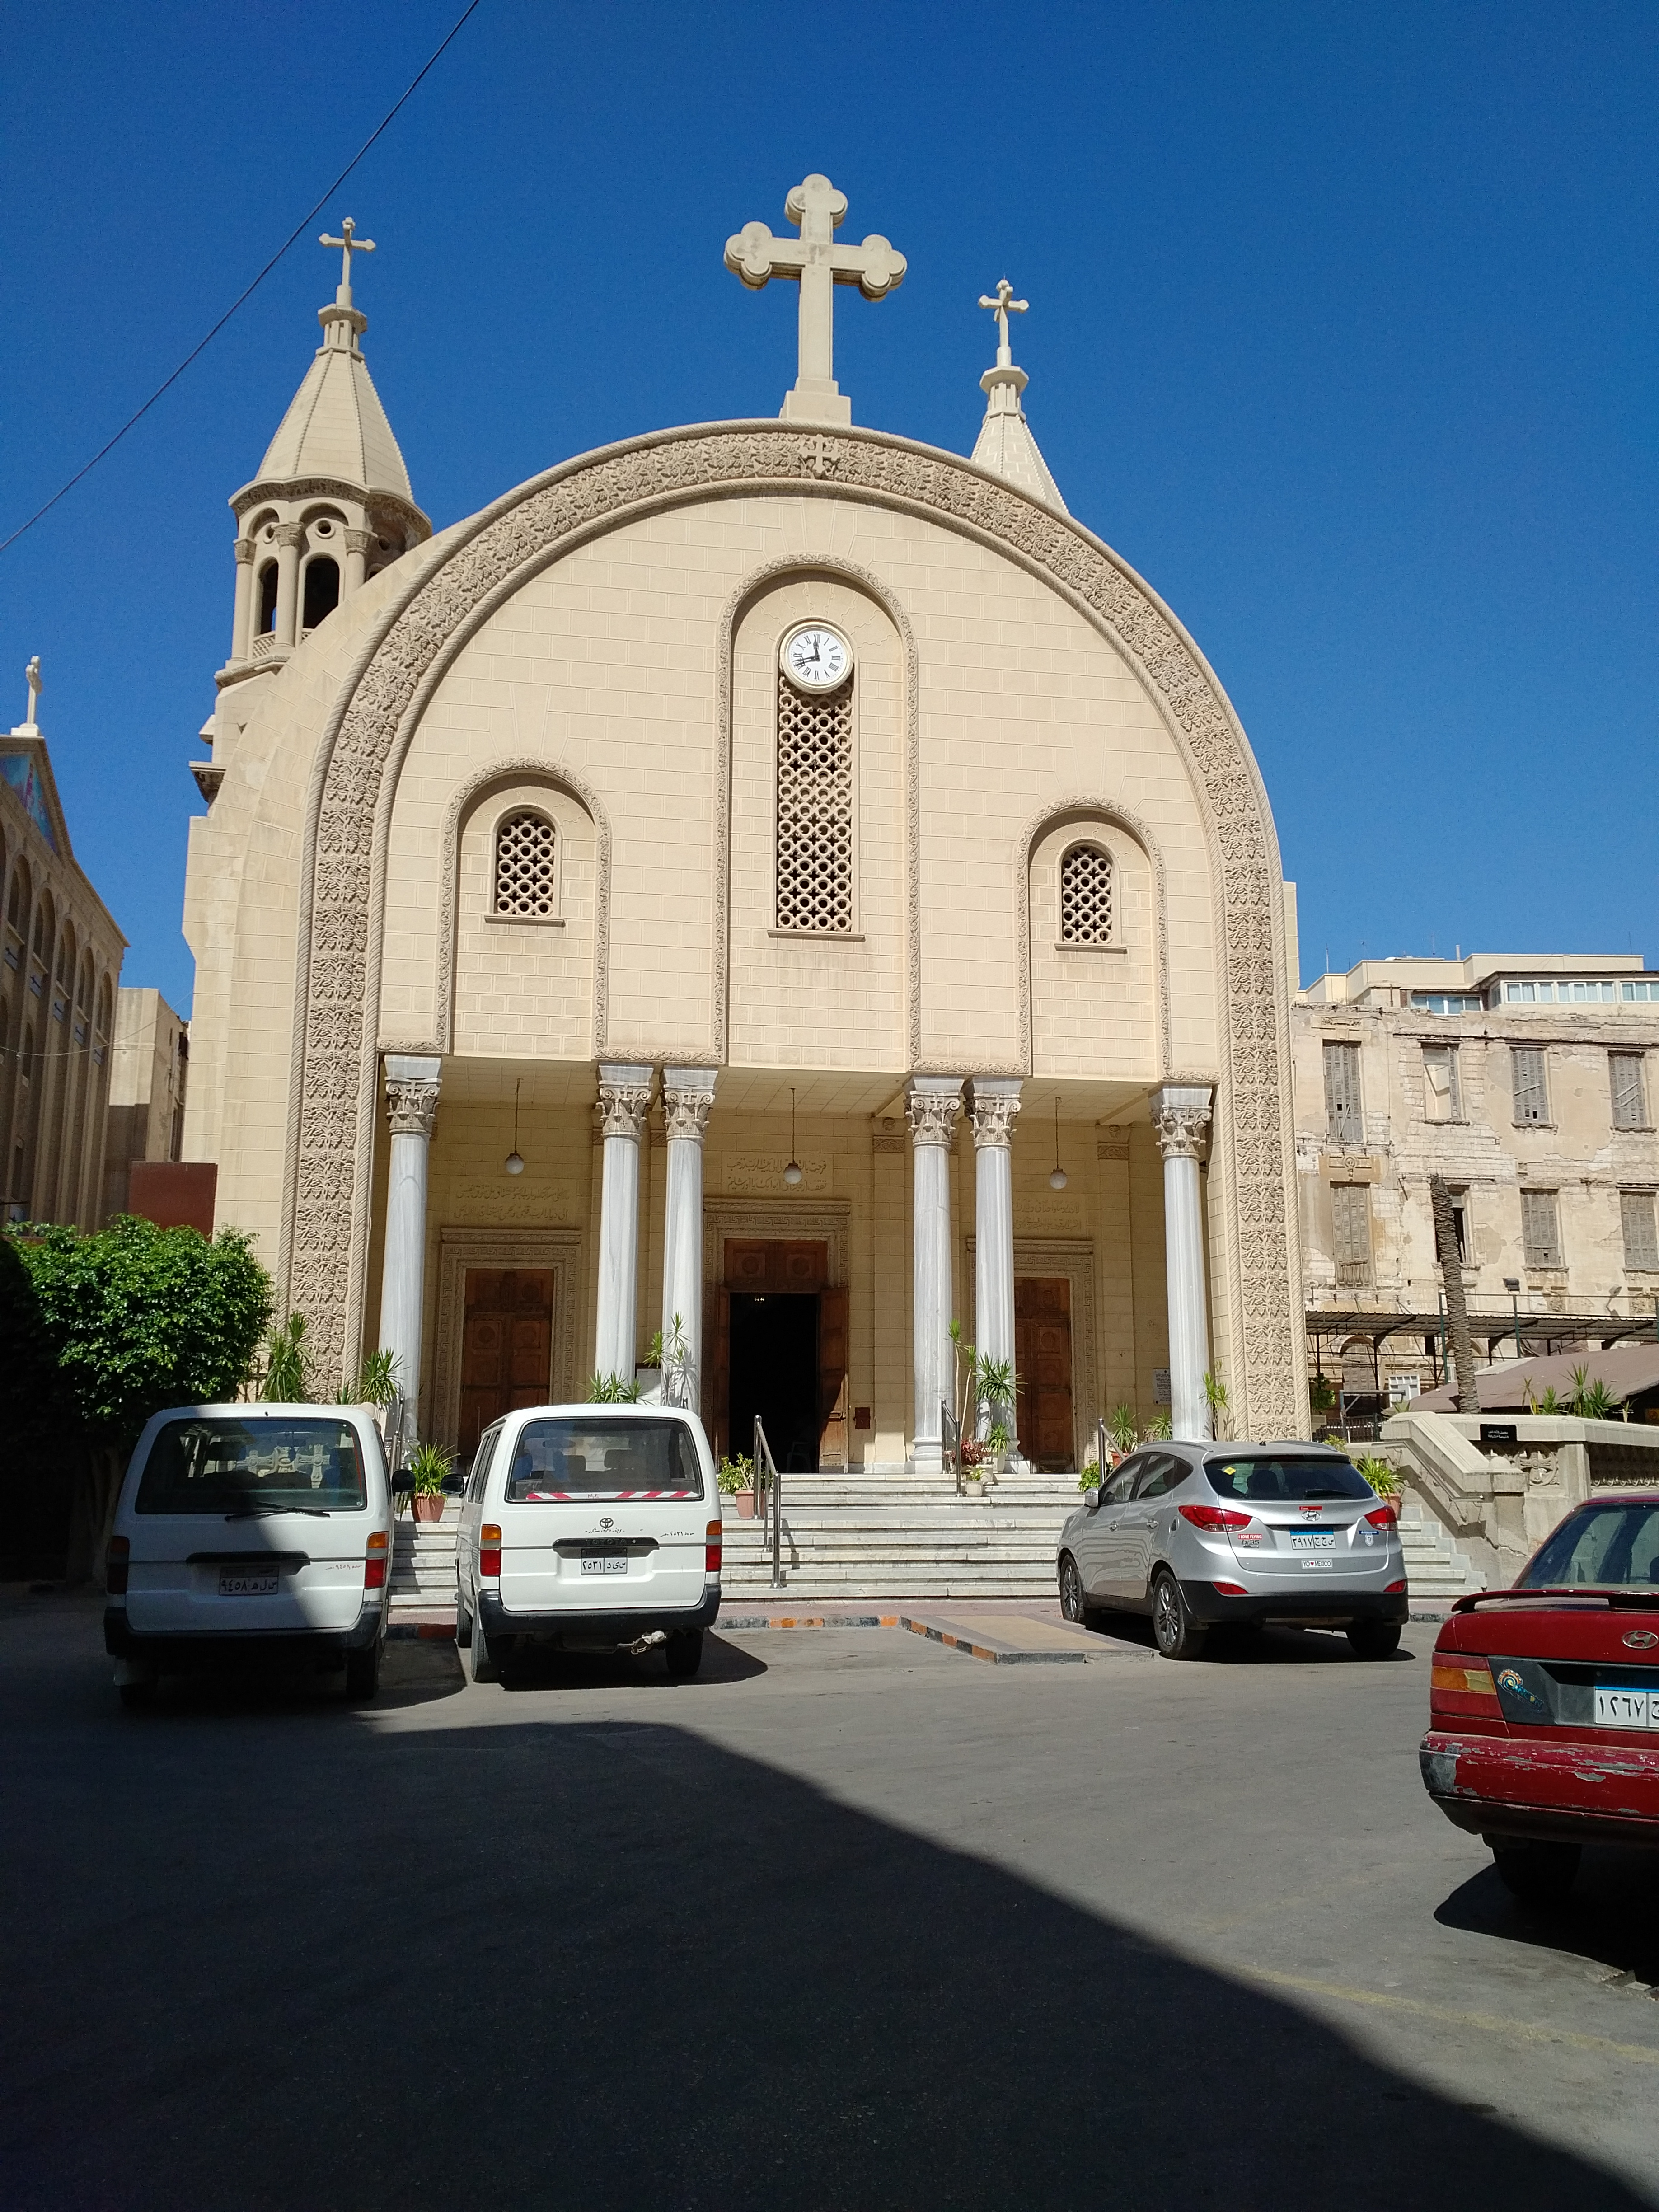 ALEXANDRIA, Church of St. Catherine of Alexandria